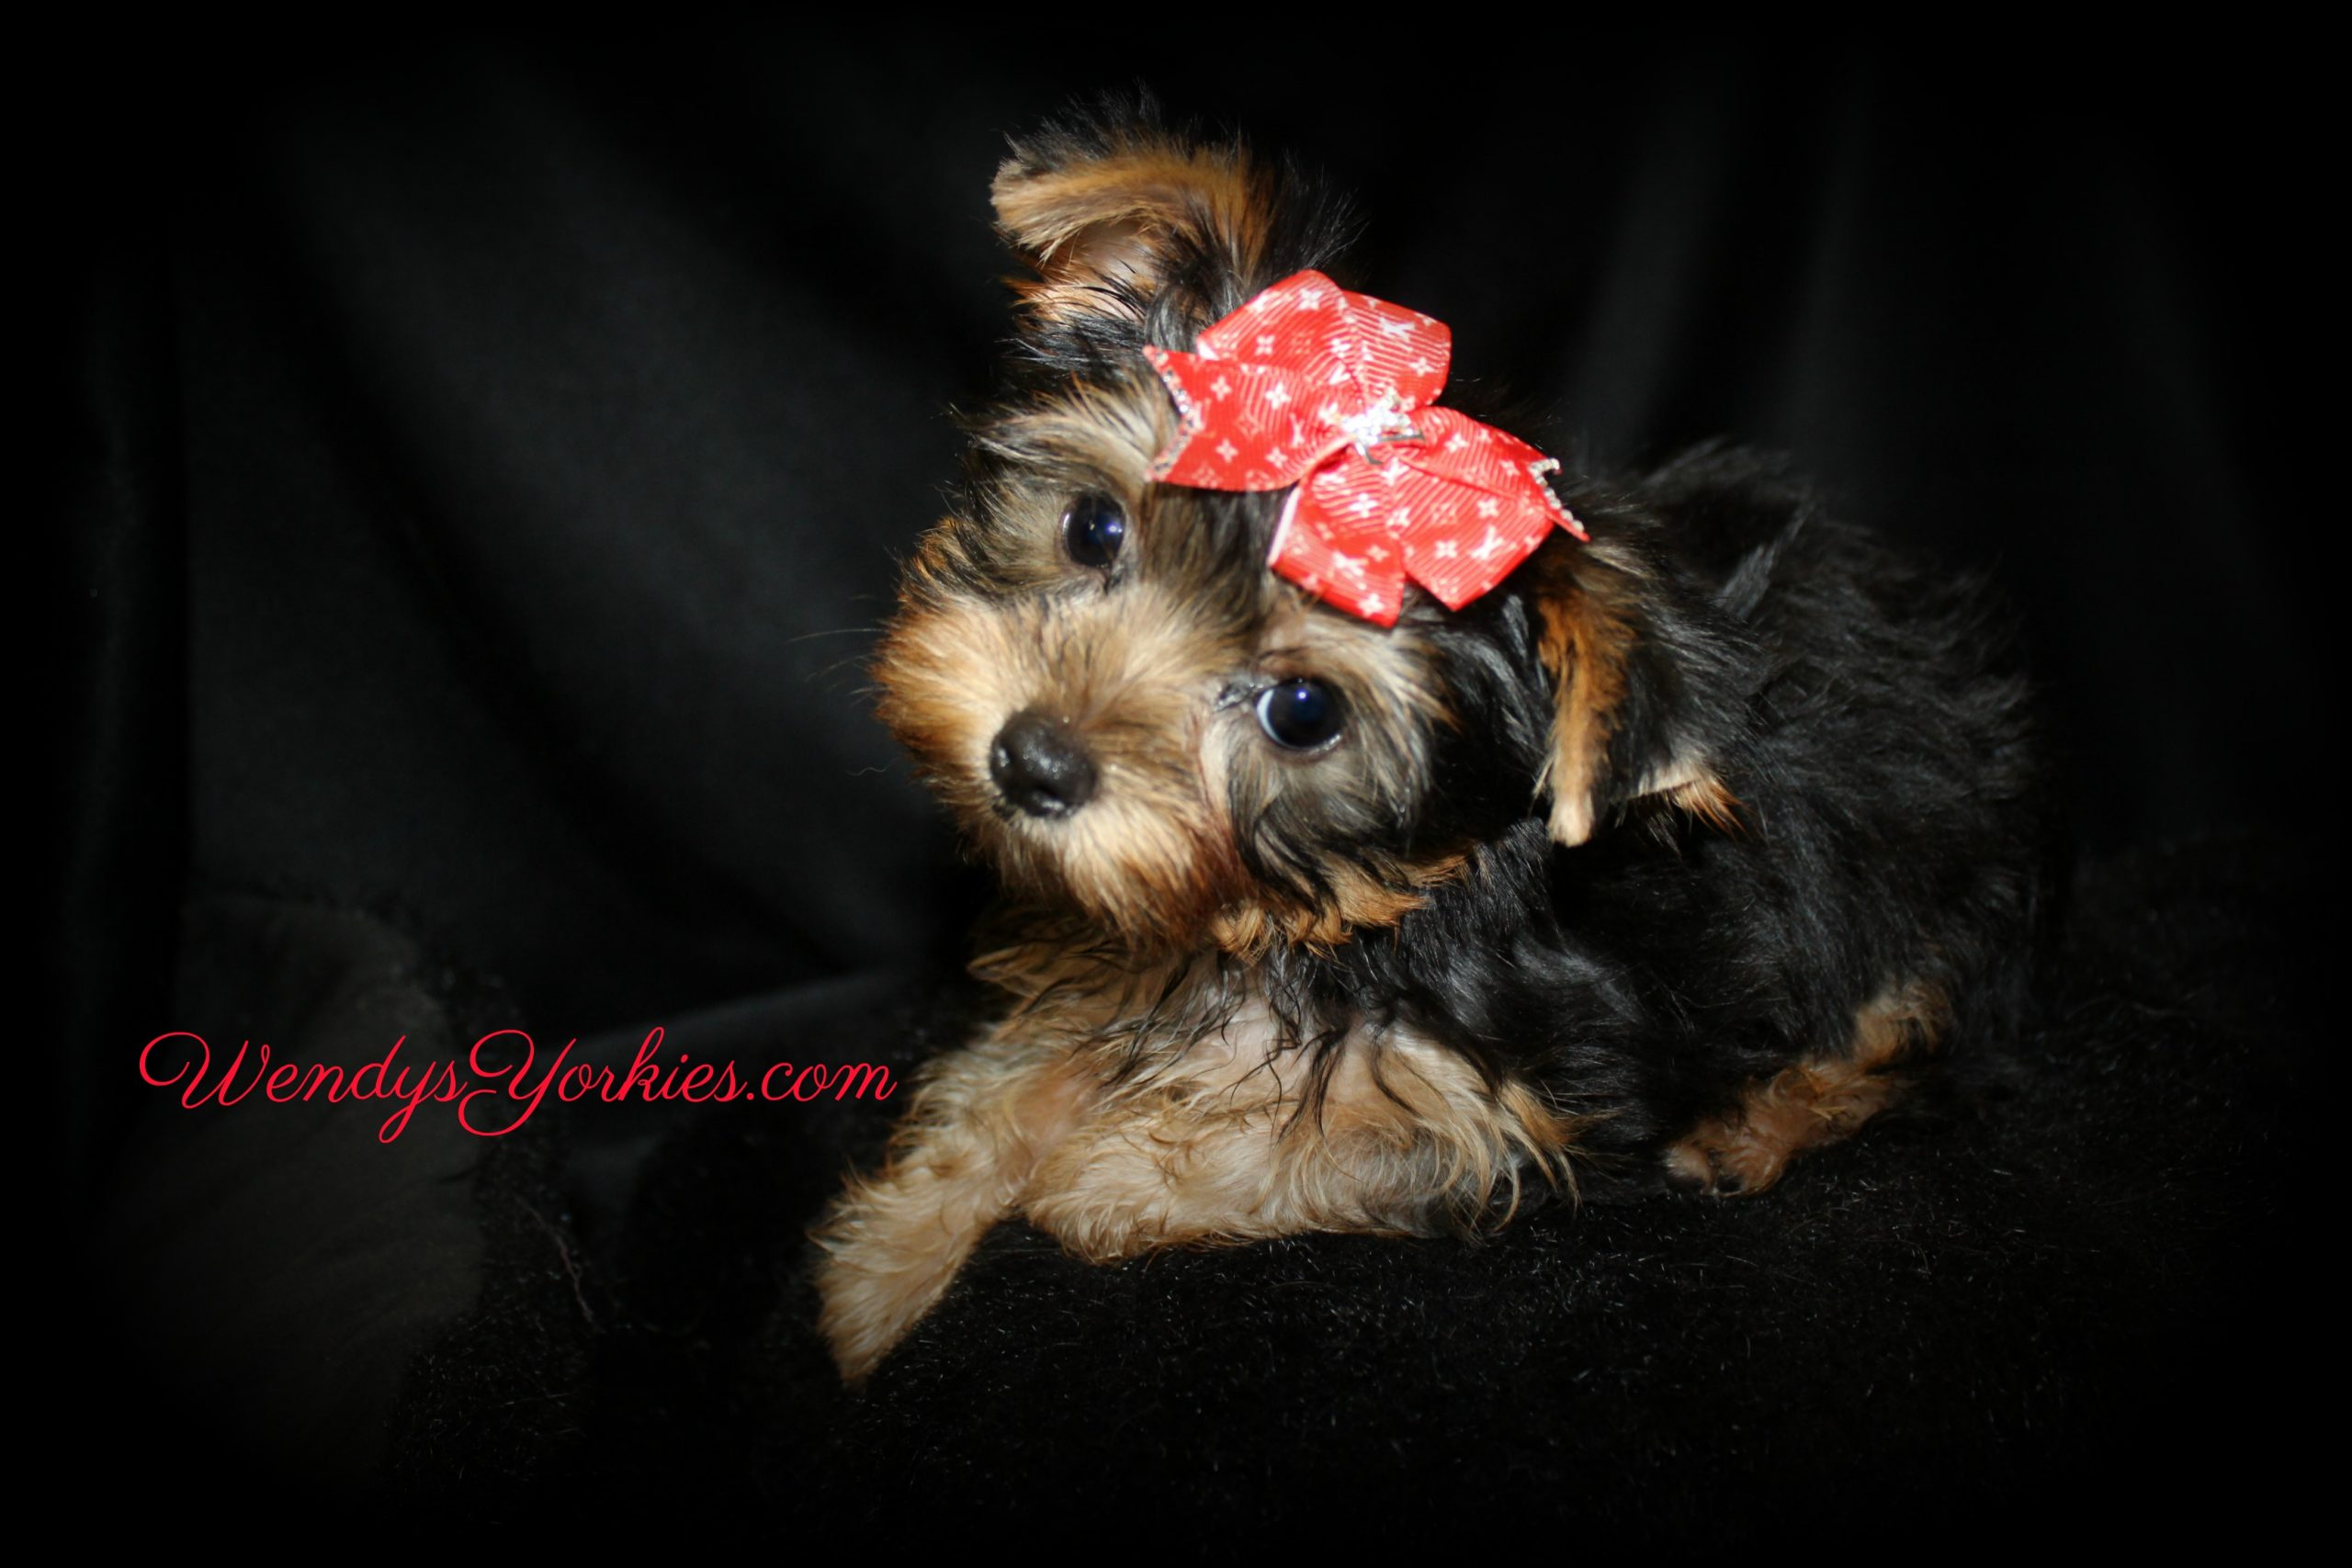 Tiny Yorkie puppy for sale, Nola m1,WendysYorkies.com